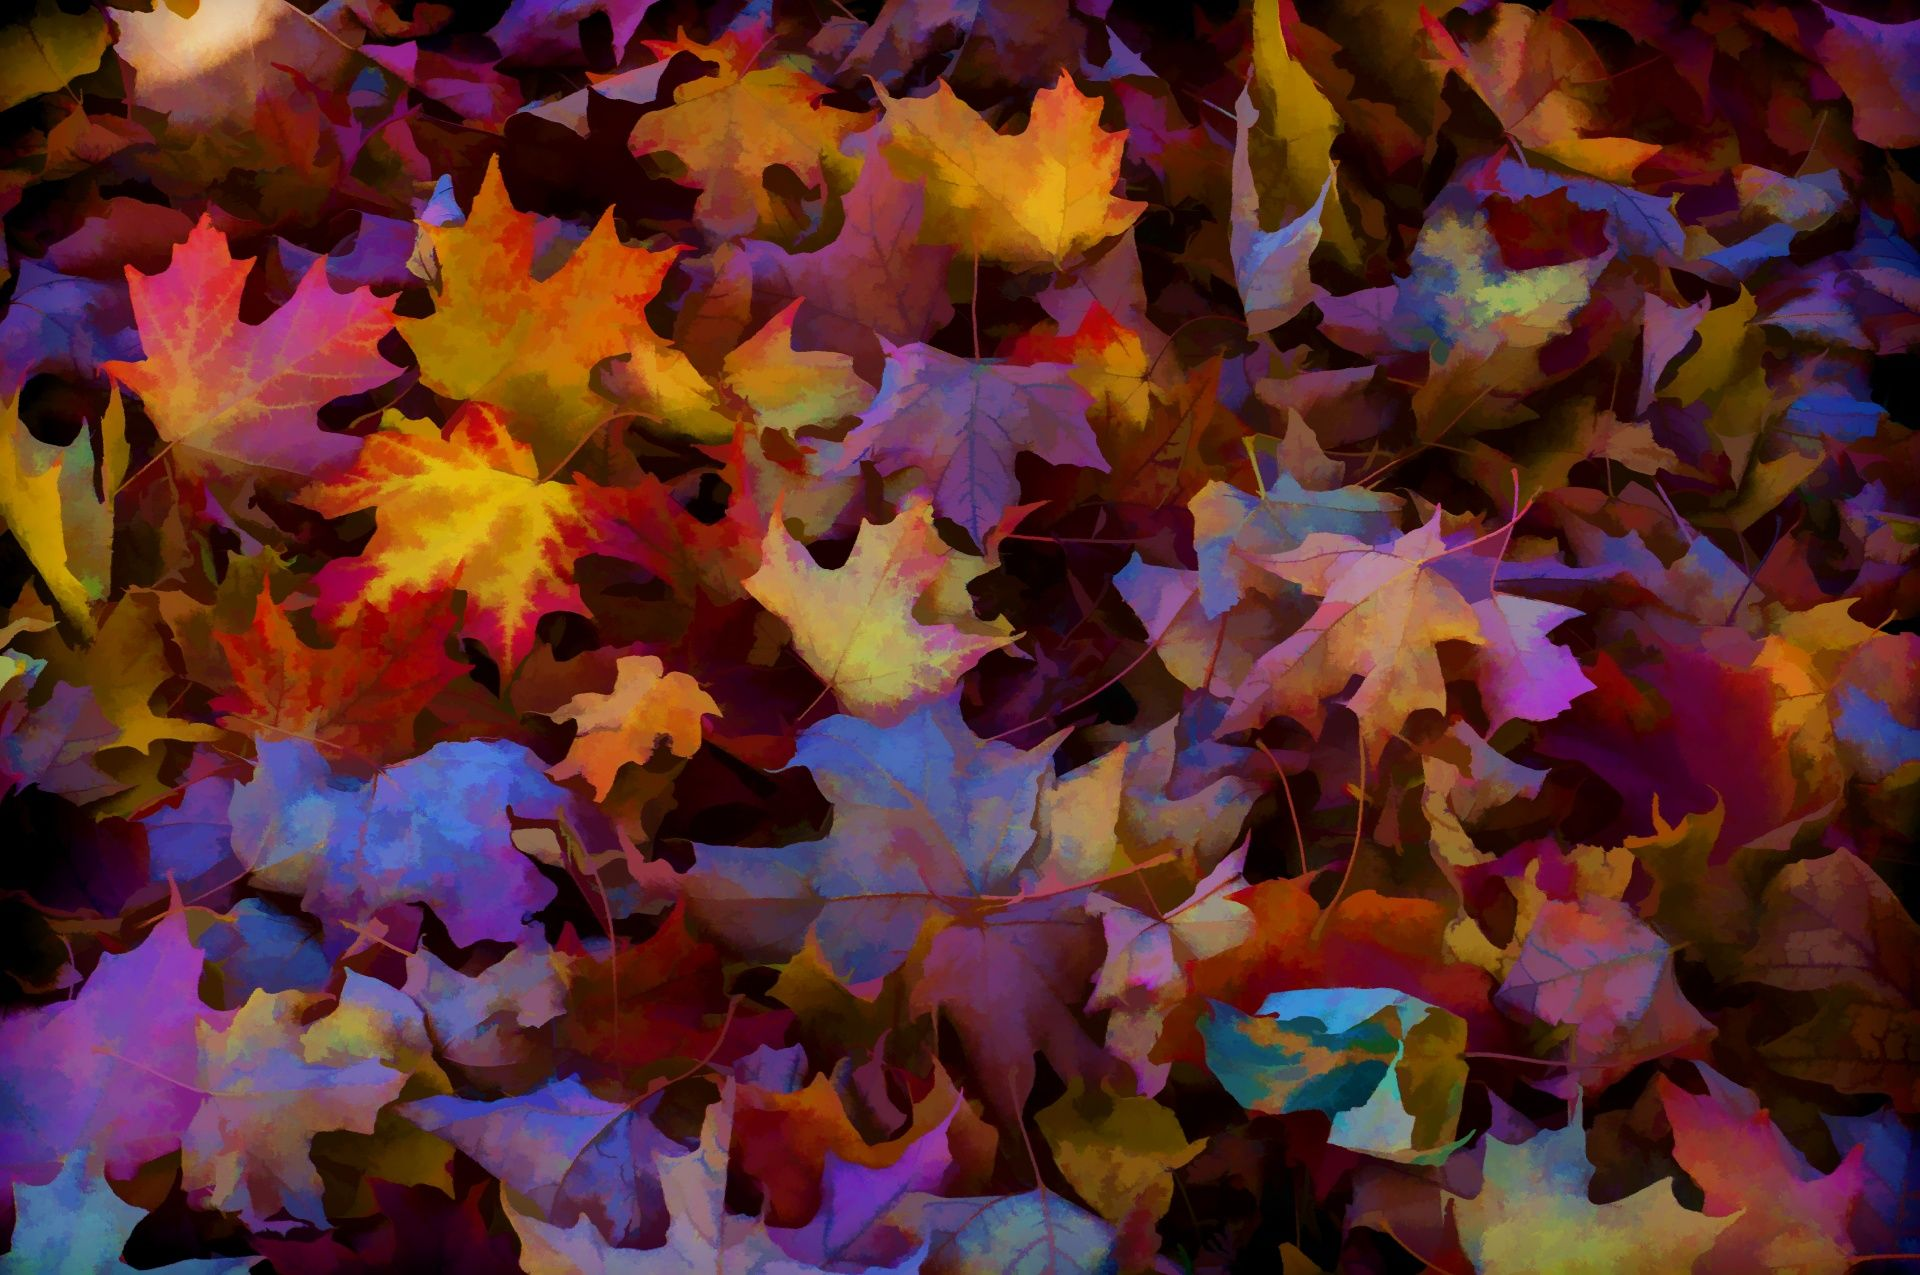 Autumn Leaves Background One Of Over 14 0000 Free Images For Private Or Commercial Use Perfect Autumn Leaves Background Leaf Background Artistic Wallpaper